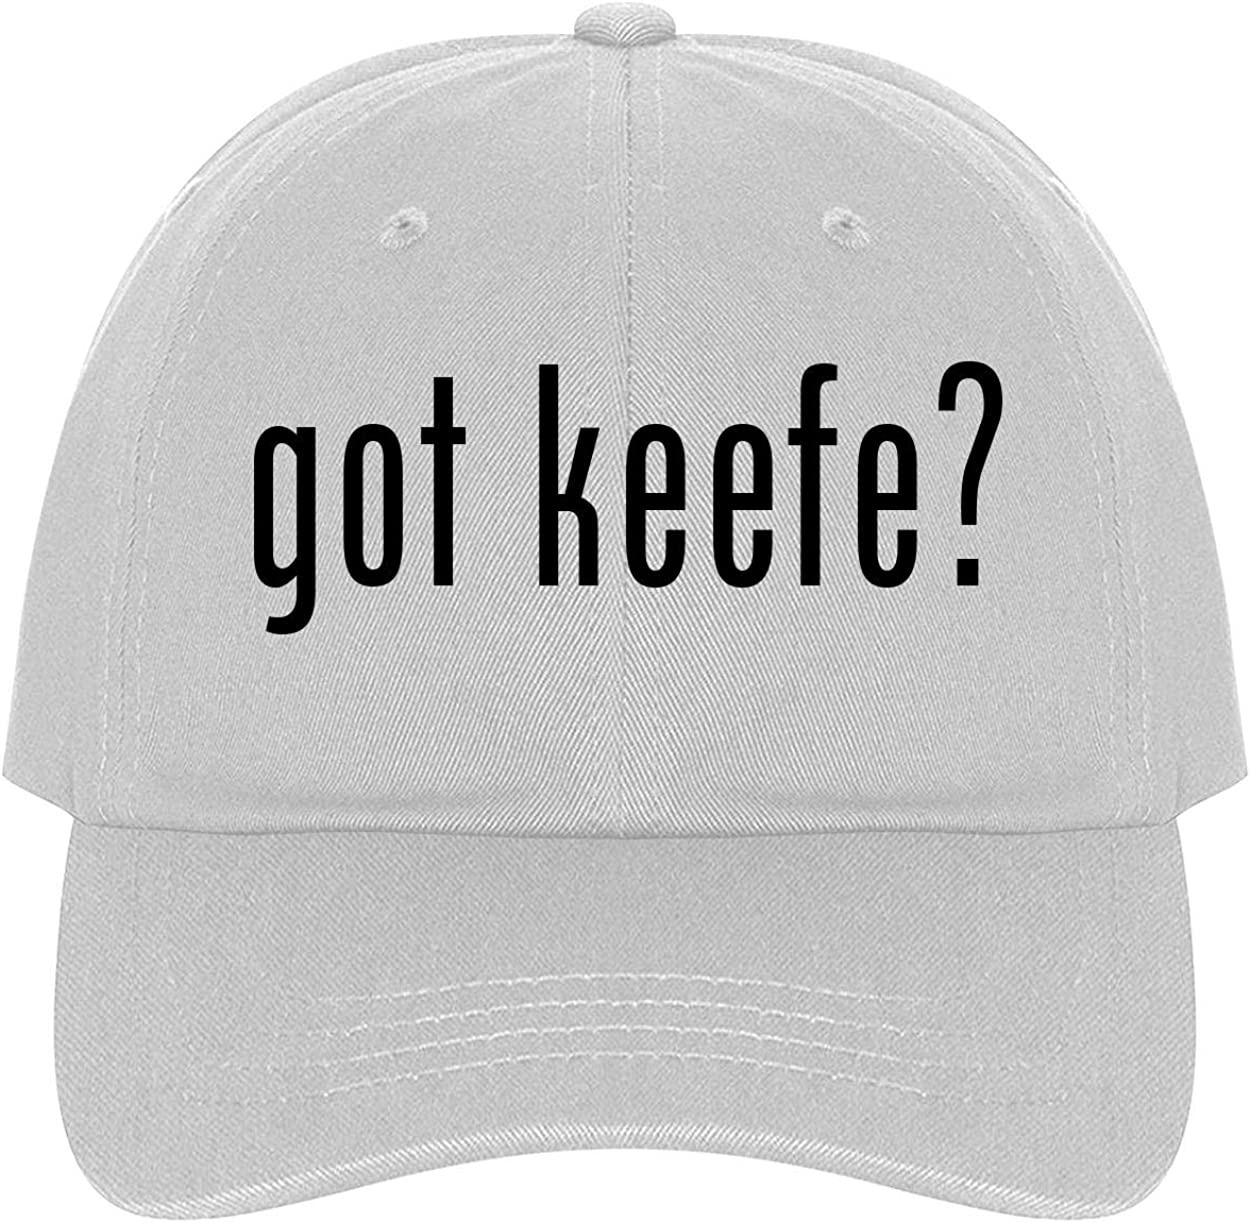 A Nice Comfortable Adjustable Dad Hat Cap The Town Butler got Keefe?